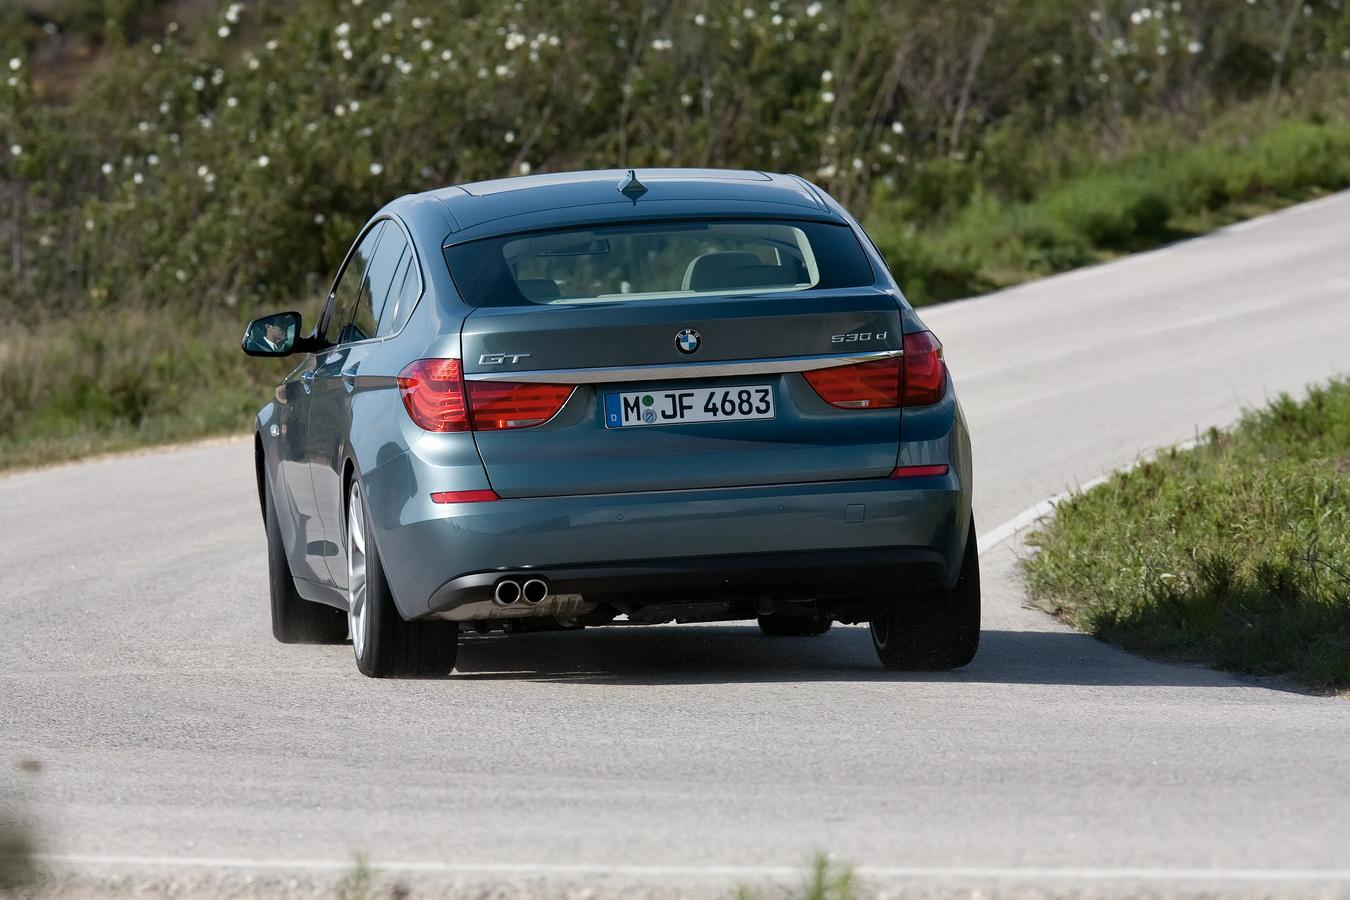 Official Details For New 2010 Bmw 5 Series Gran Turismo Revealed Photos And Video It S Your Auto World New Cars Auto News Reviews Photos Videos